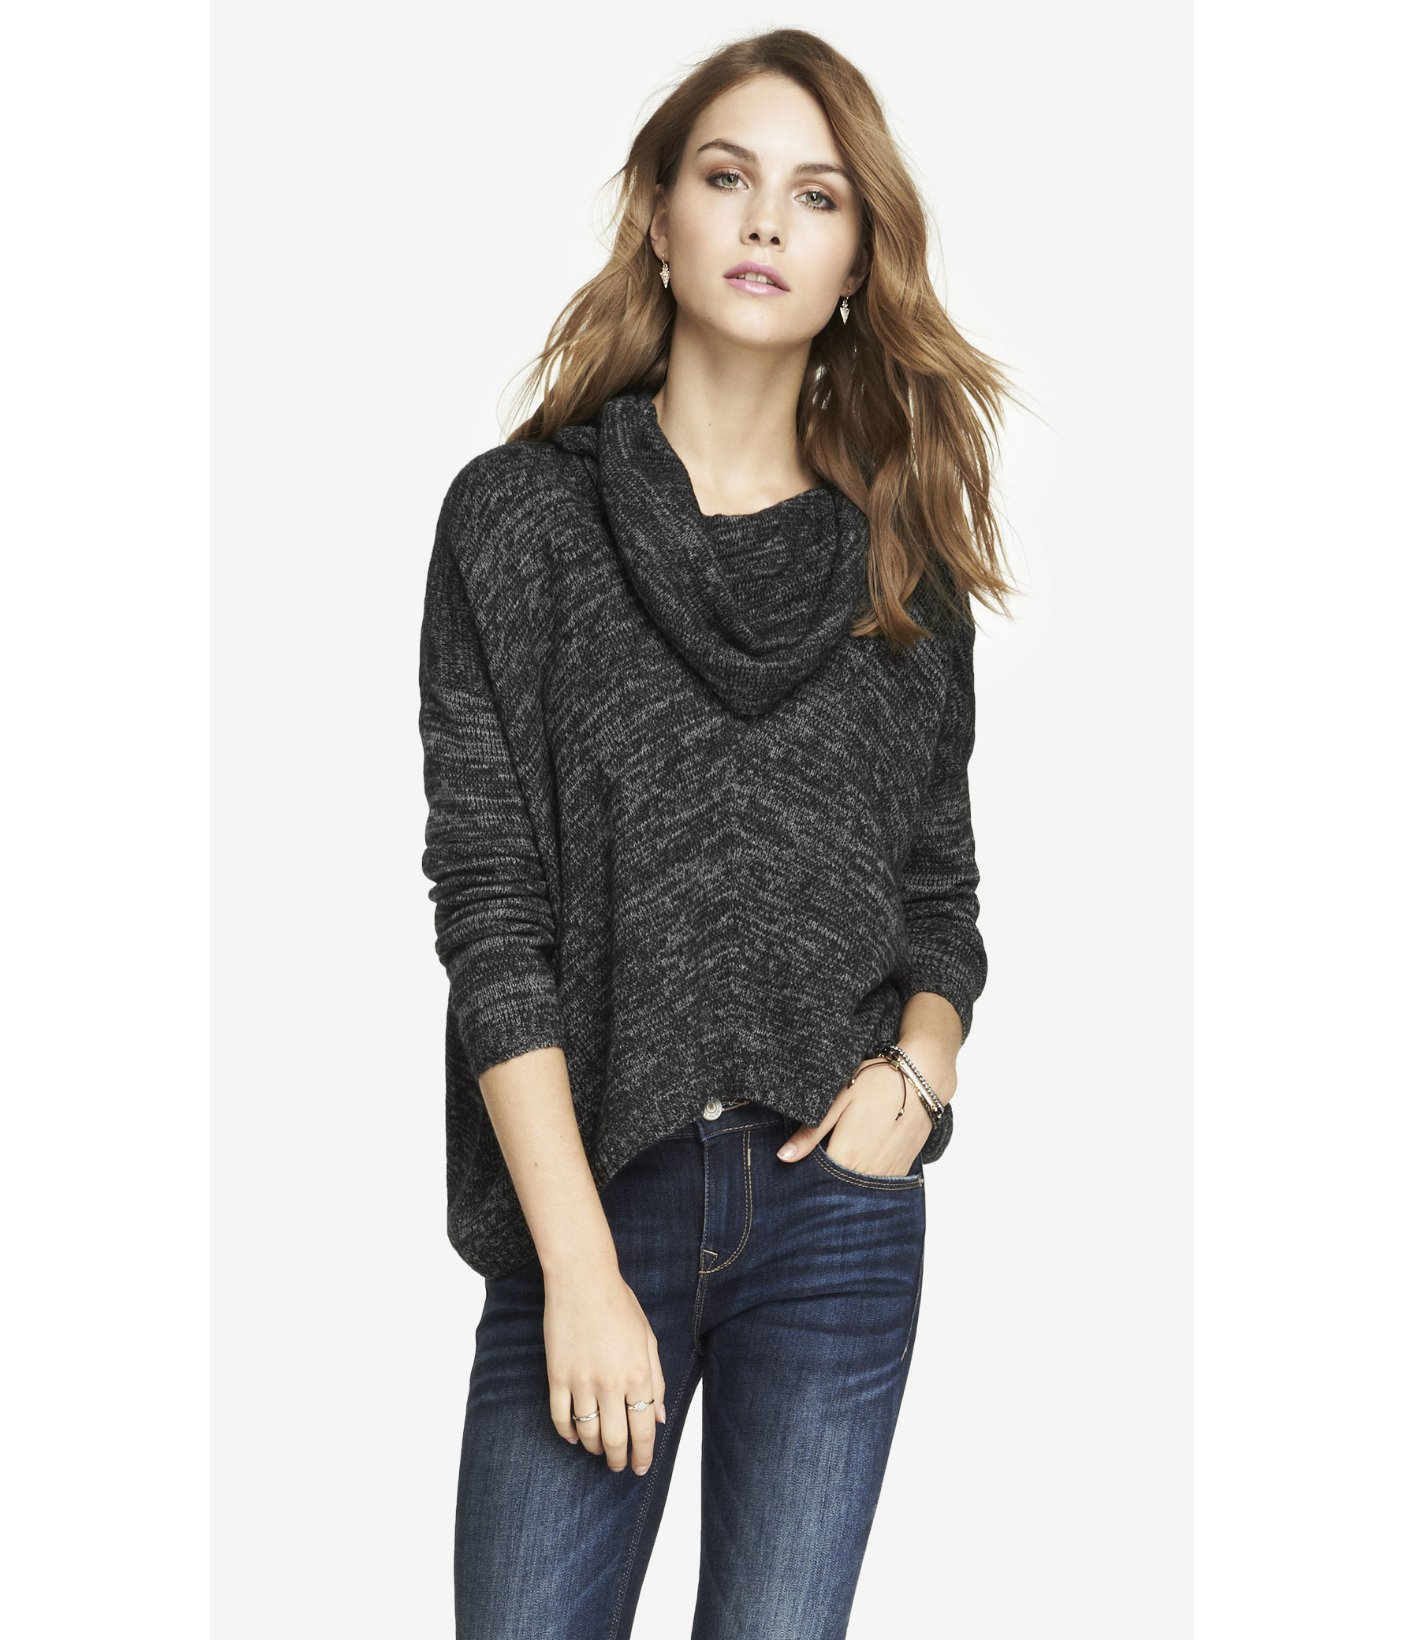 Express Oversized Marled Cowl Neck Sweater in Gray | Lyst